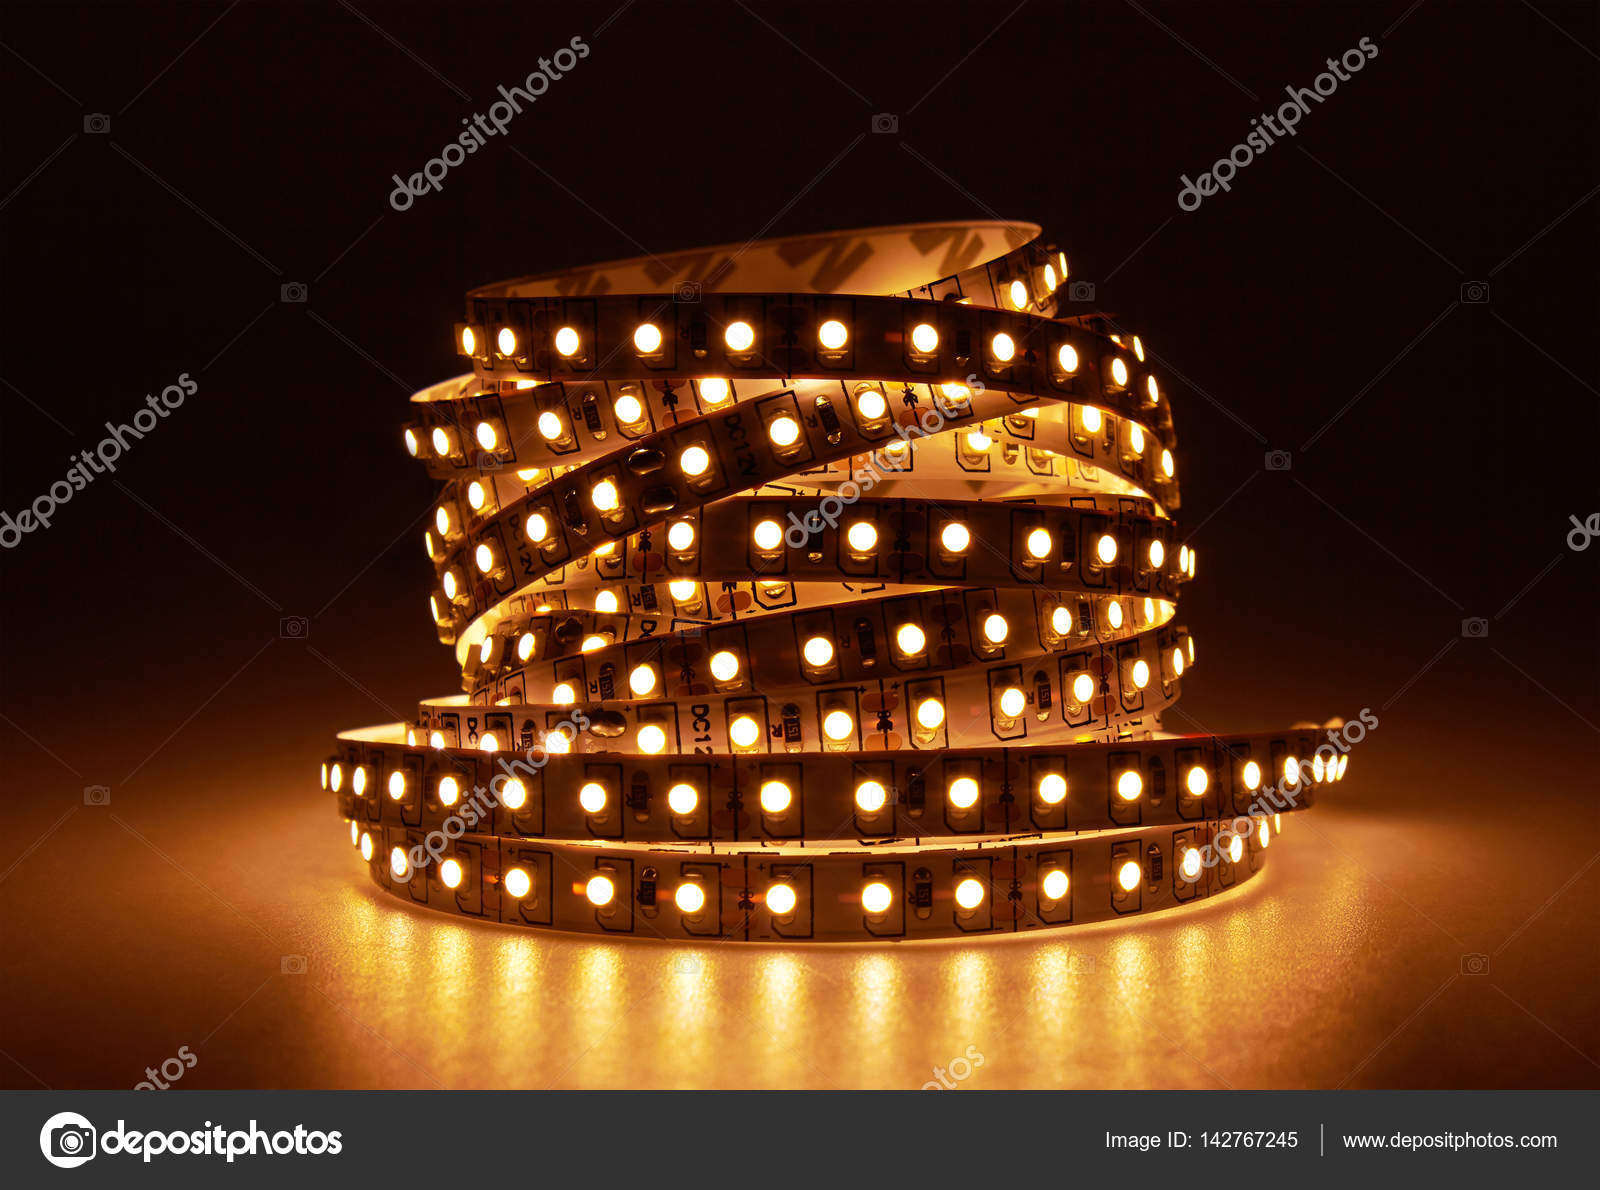 Diode strip. led verlichting tape u2014 stockfoto © krasyuk #142767245